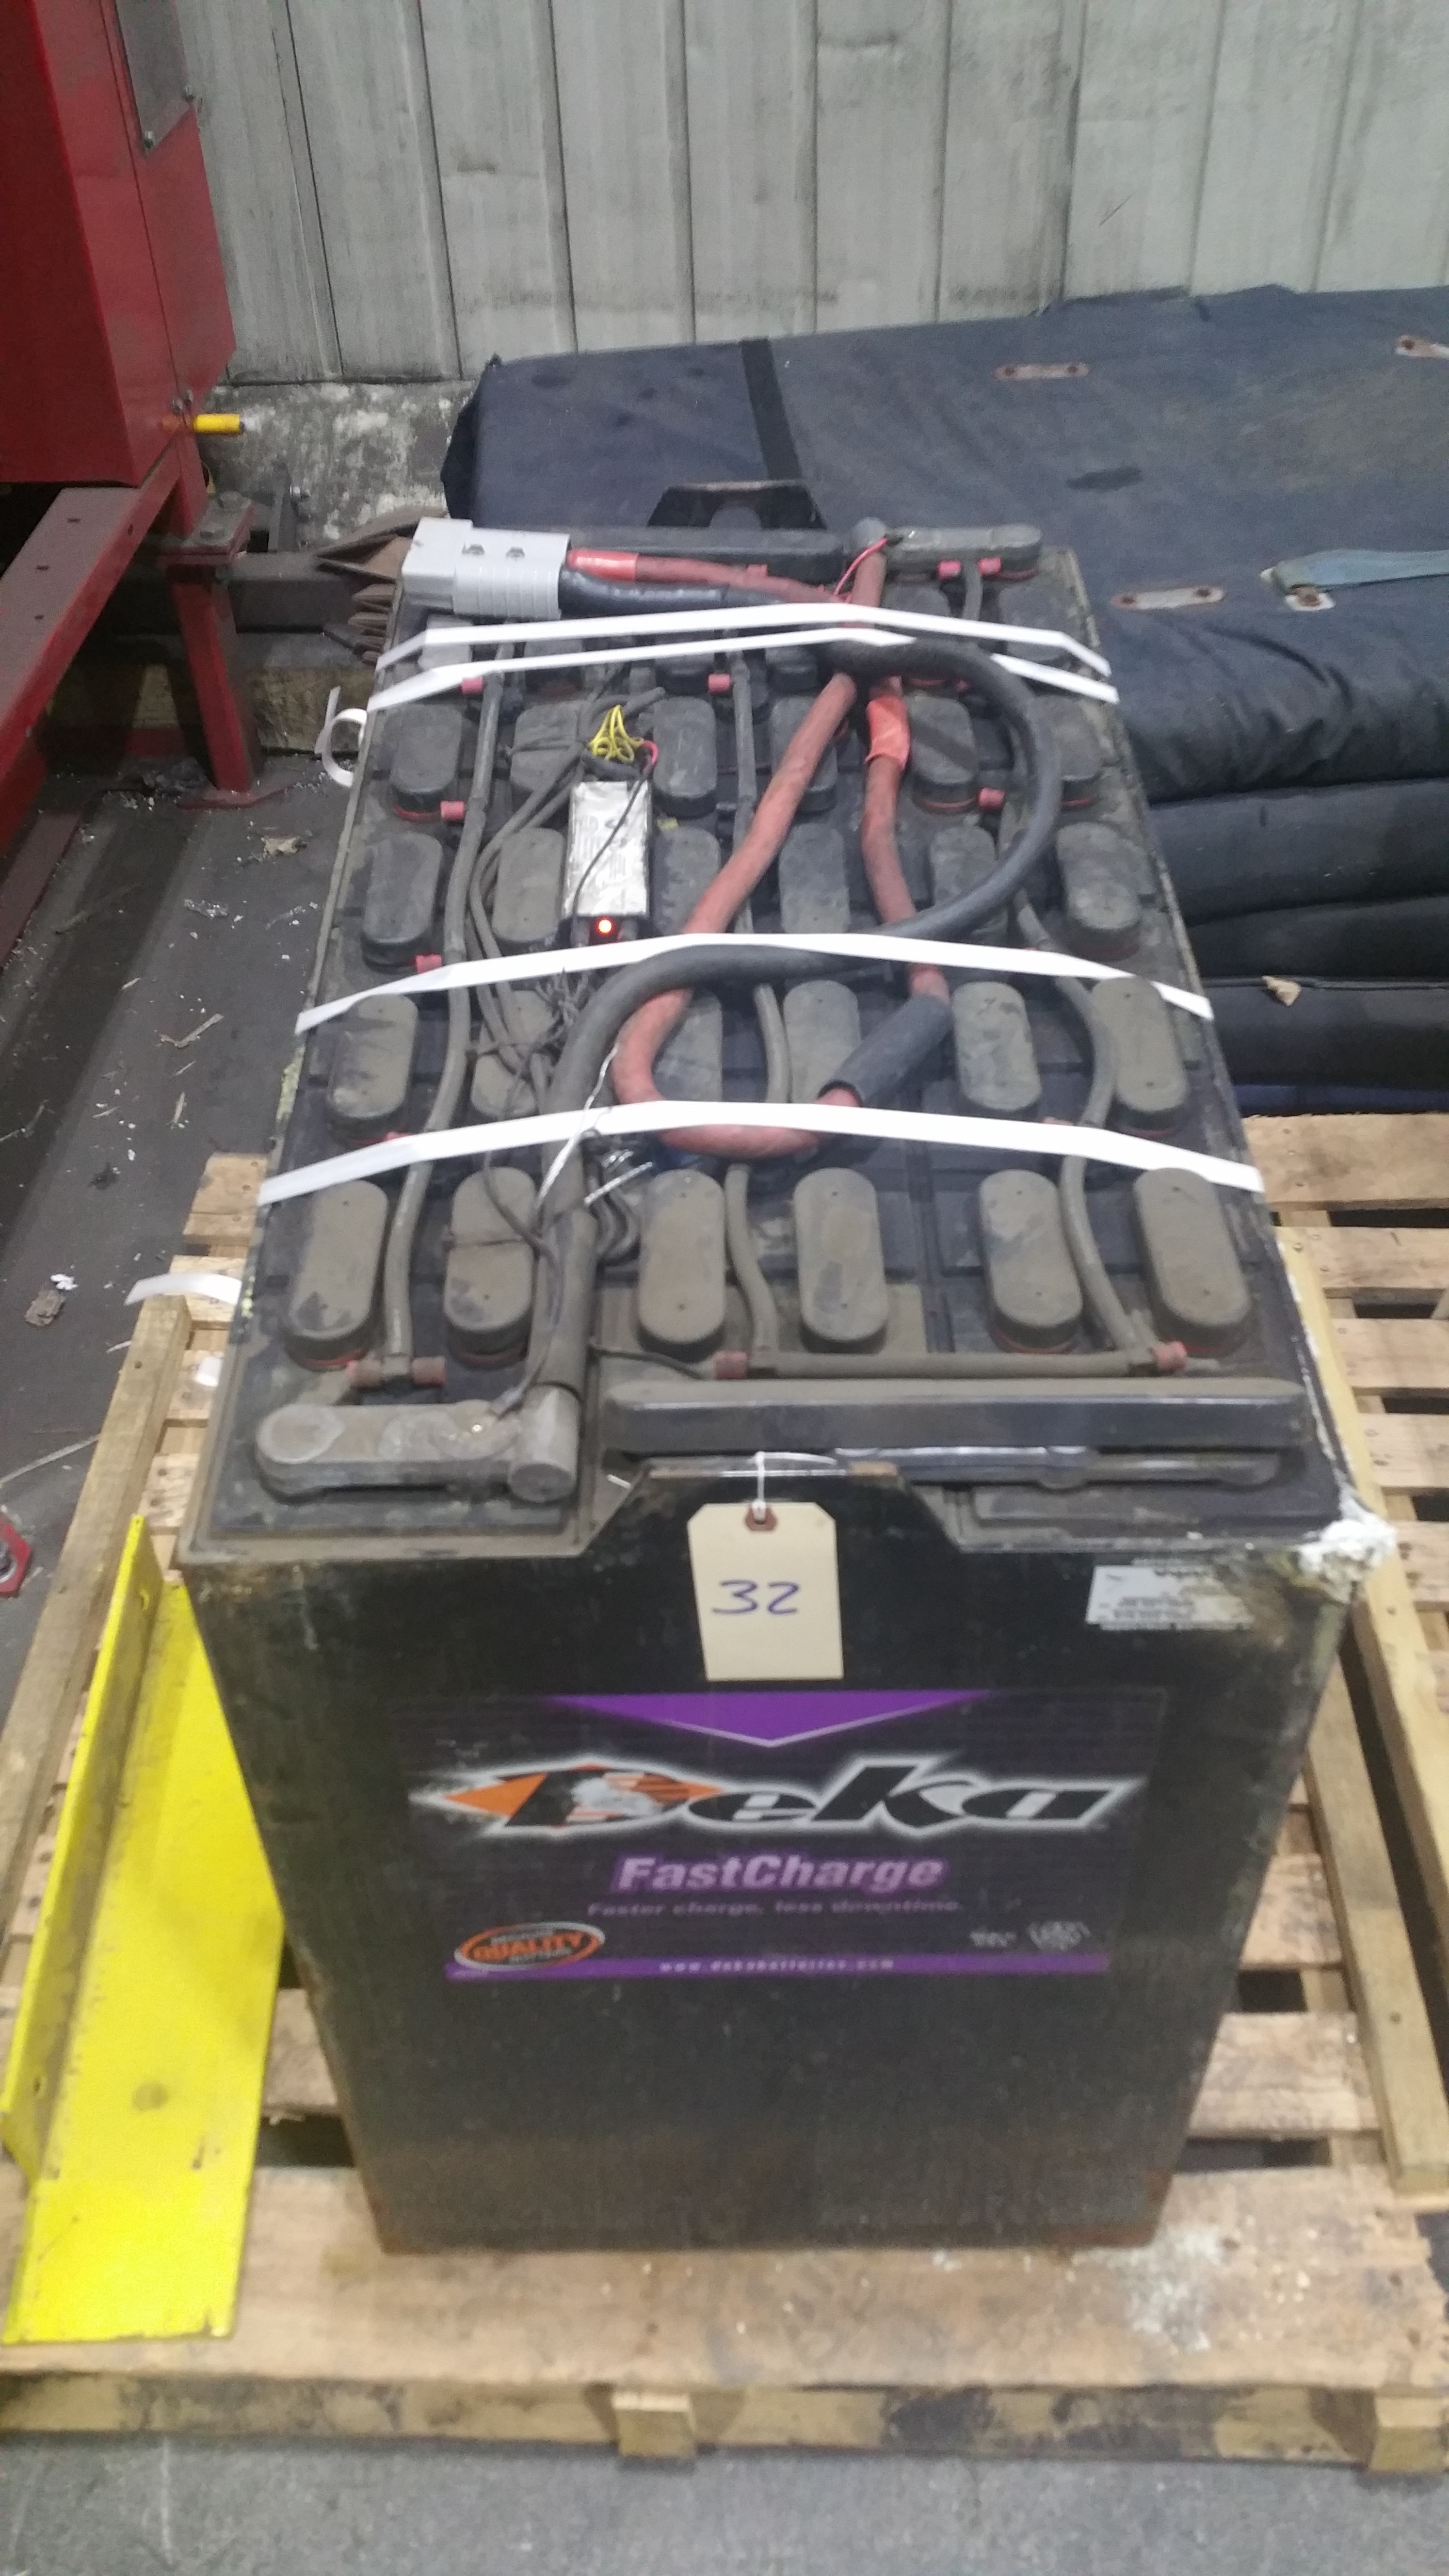 """Lot 32 - (2) Deka Fast Charge 36V Batteries New in 2014, Used Less Than 6 Months, 20 1/16"""" x 38 ¼"""" x 30 7/1"""